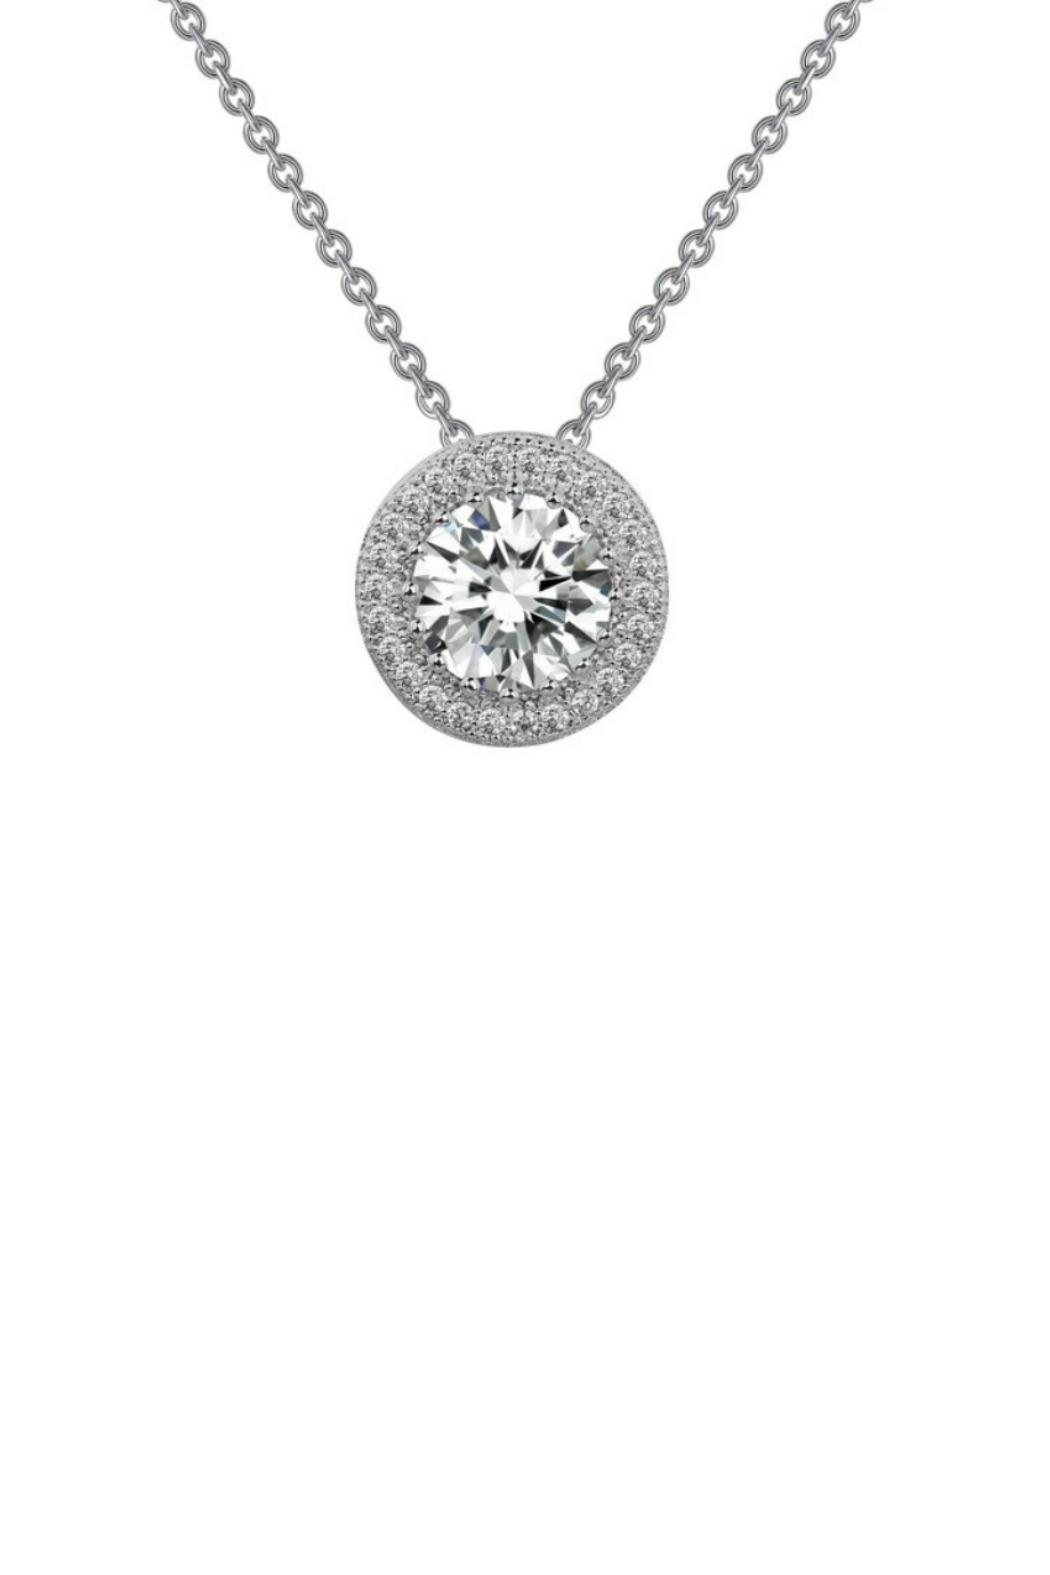 simulated carat diamond pd necklace water drop silver htm sterling pendant p